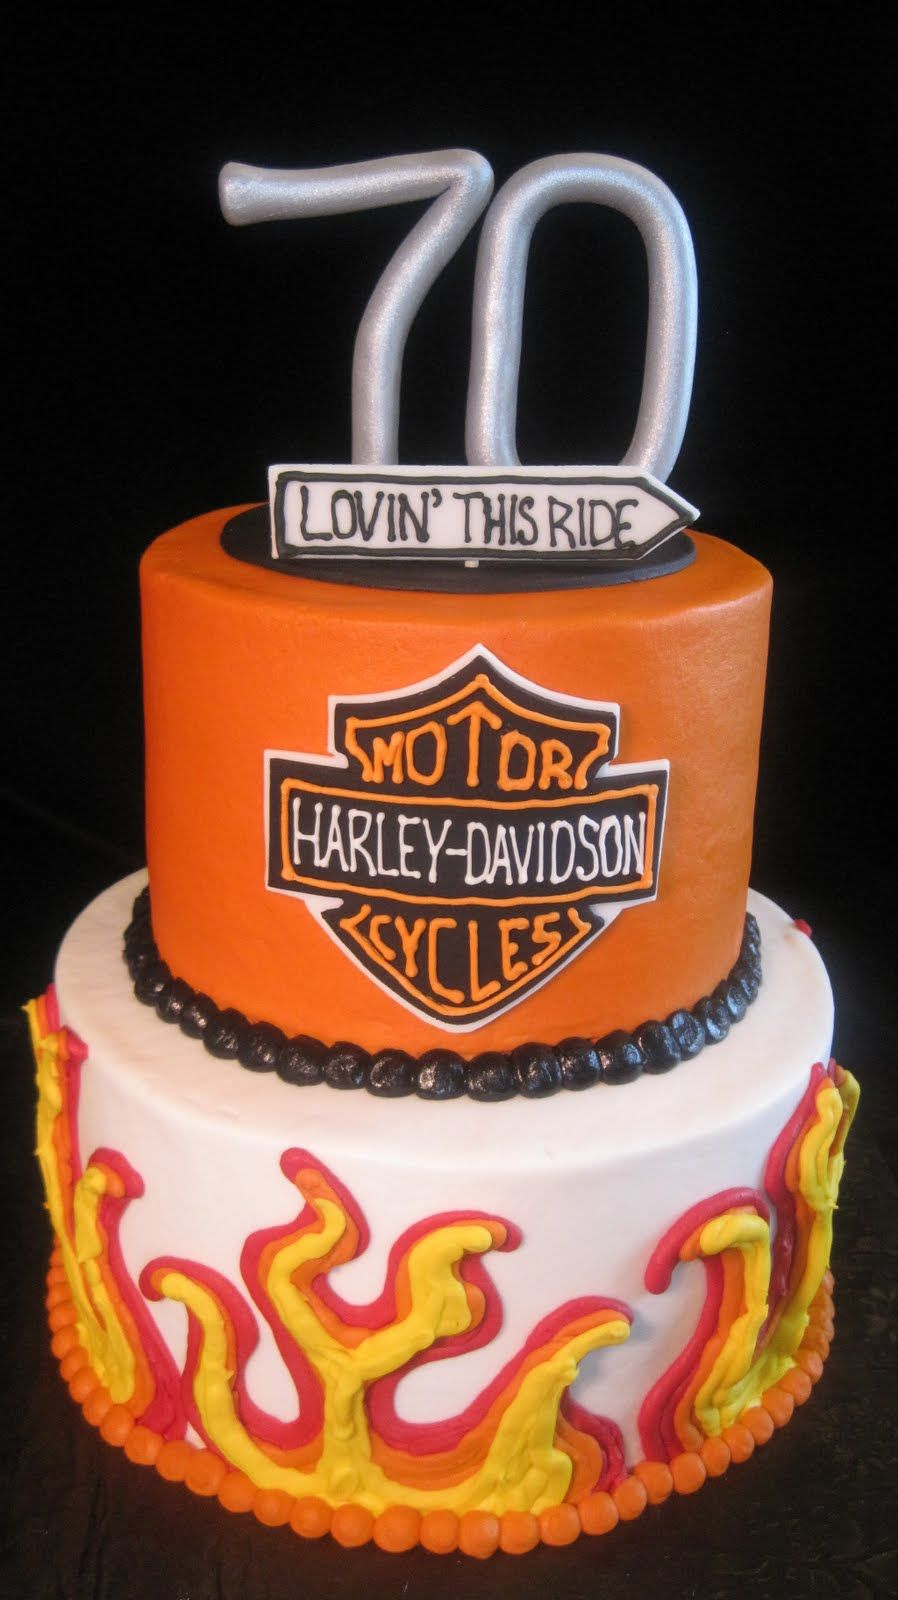 harley davidson birthday cakes Harley Davidson Birthday Cake And